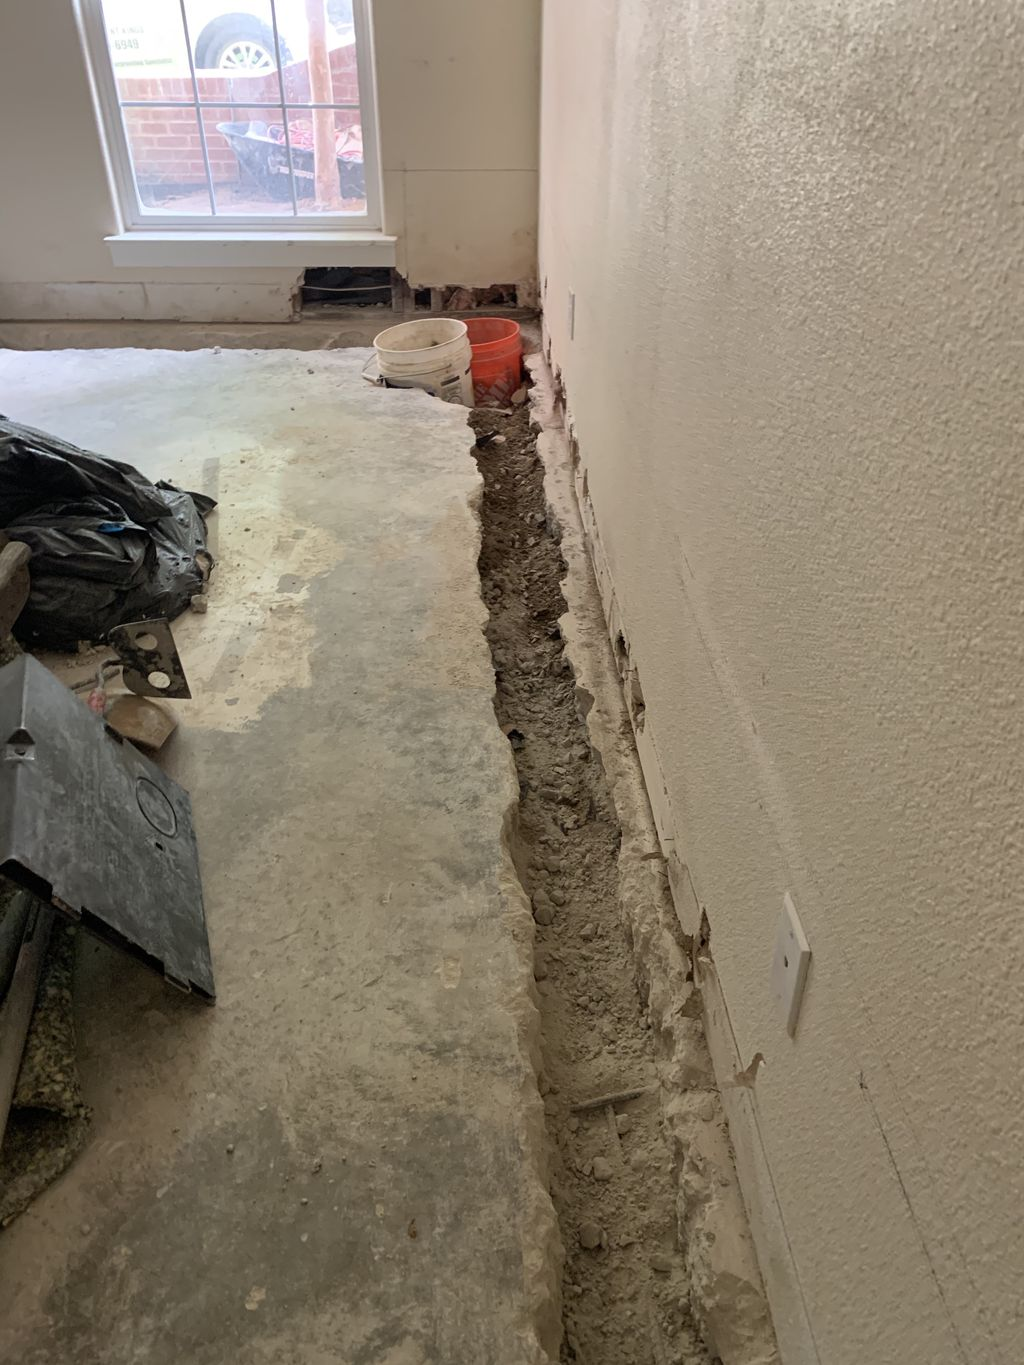 Basement Wall Leak - Repaired 4 times previously